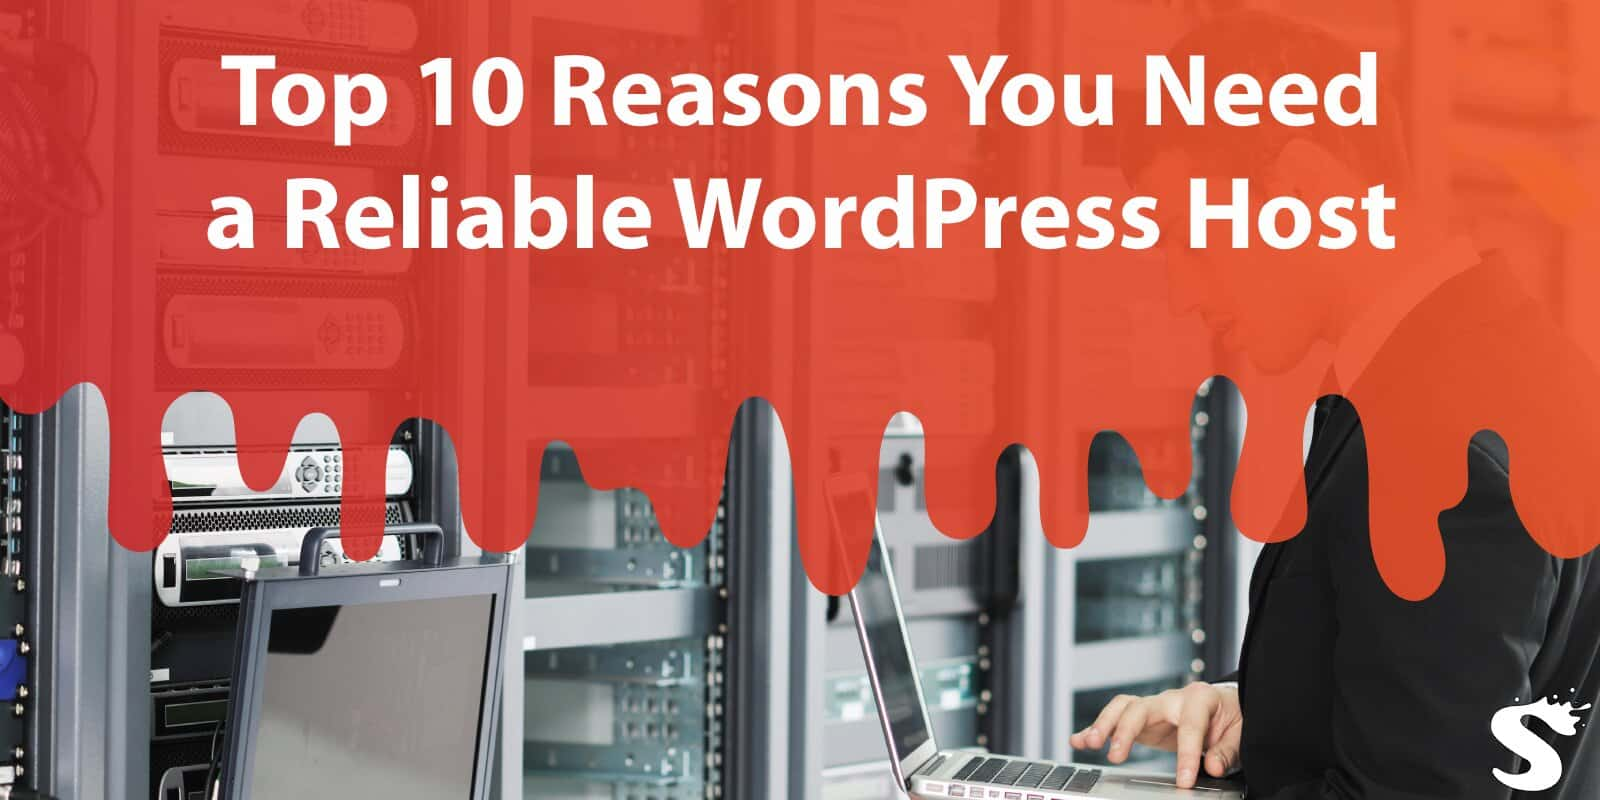 Top 10 Reasons You Need a Reliable Wordpress Host